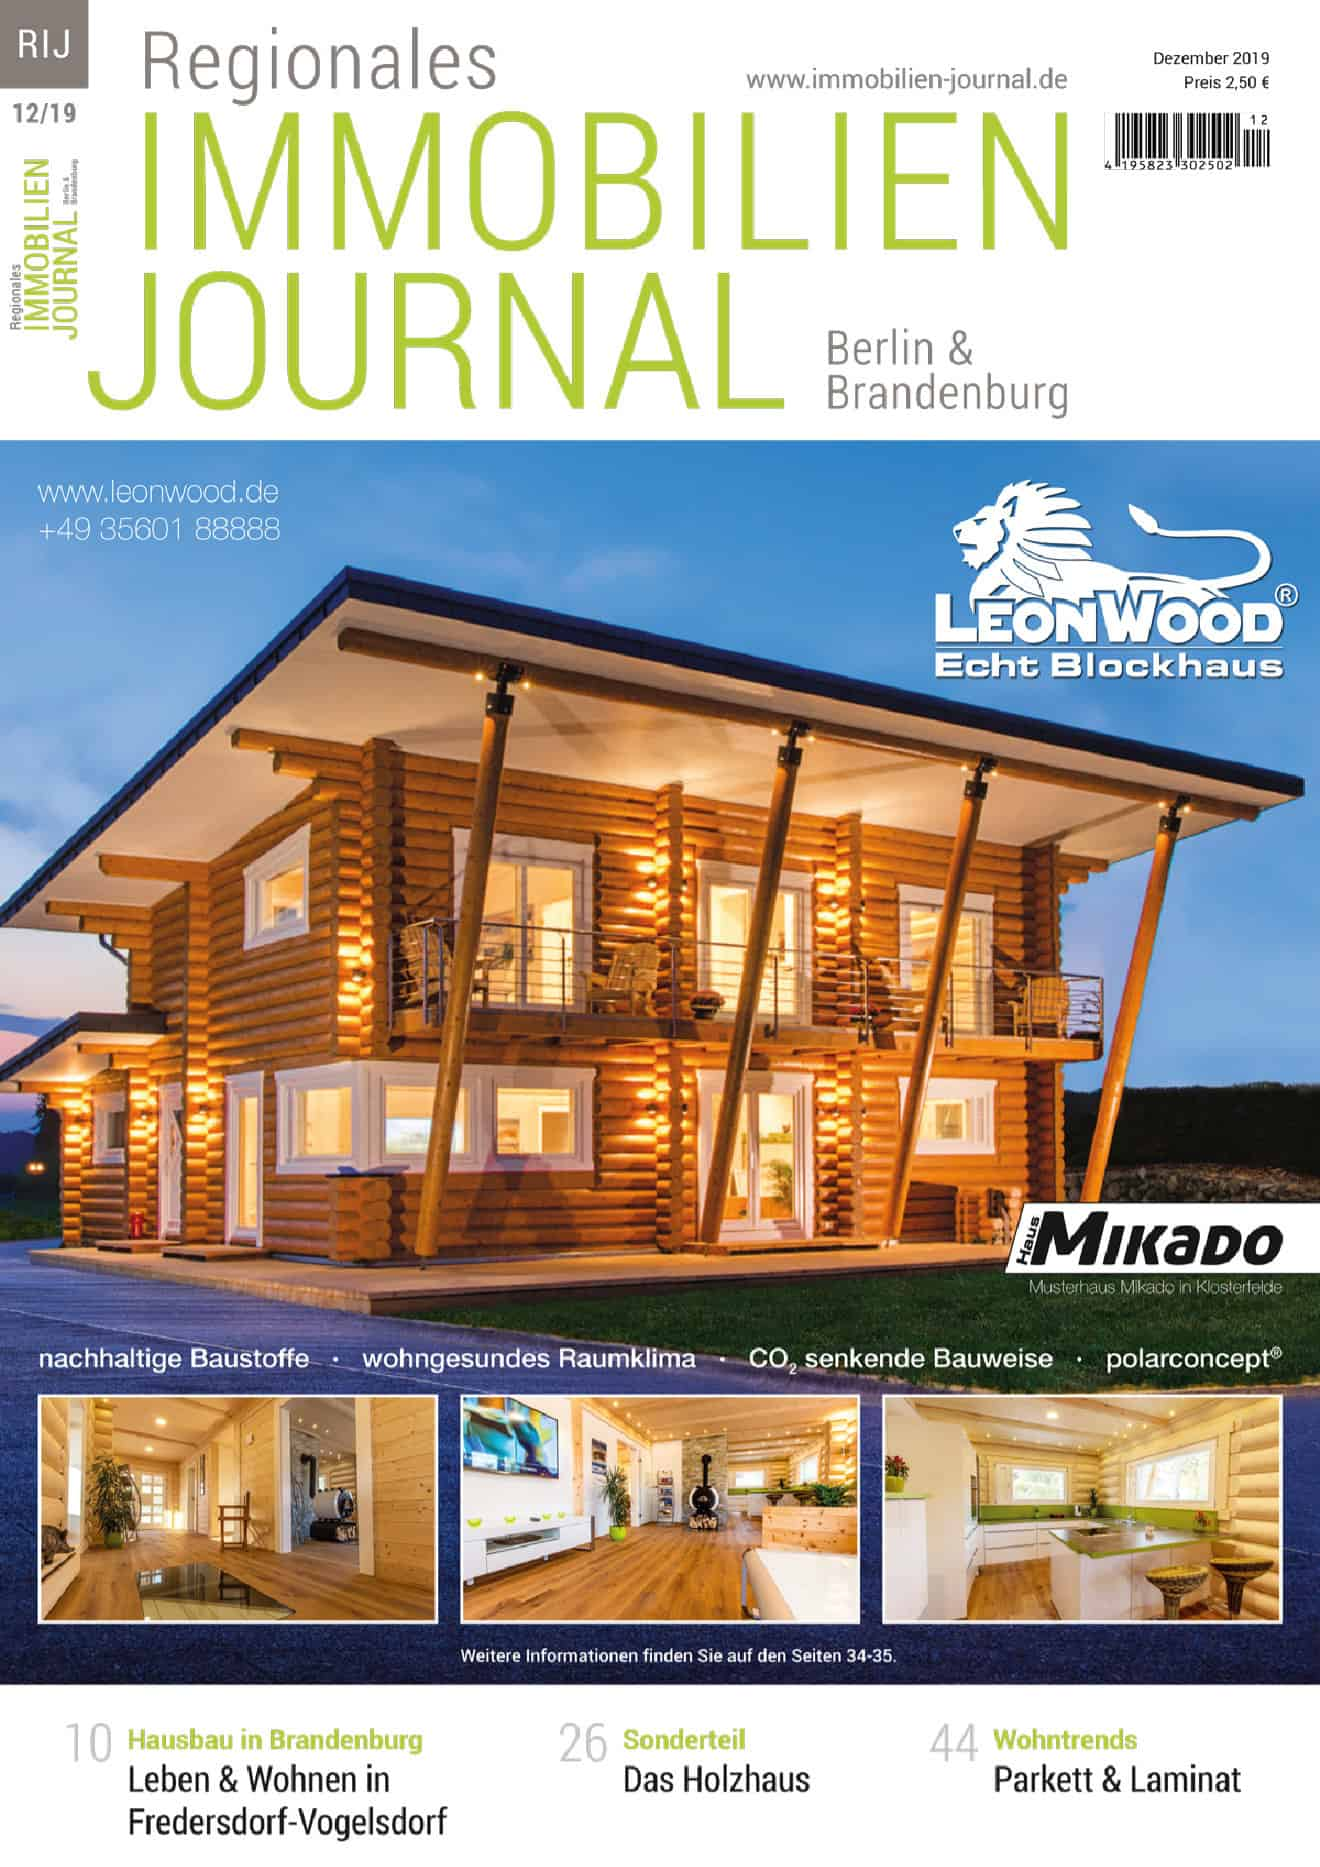 Regionales Immobilien Journal Berlin & Brandenburg 12-2019